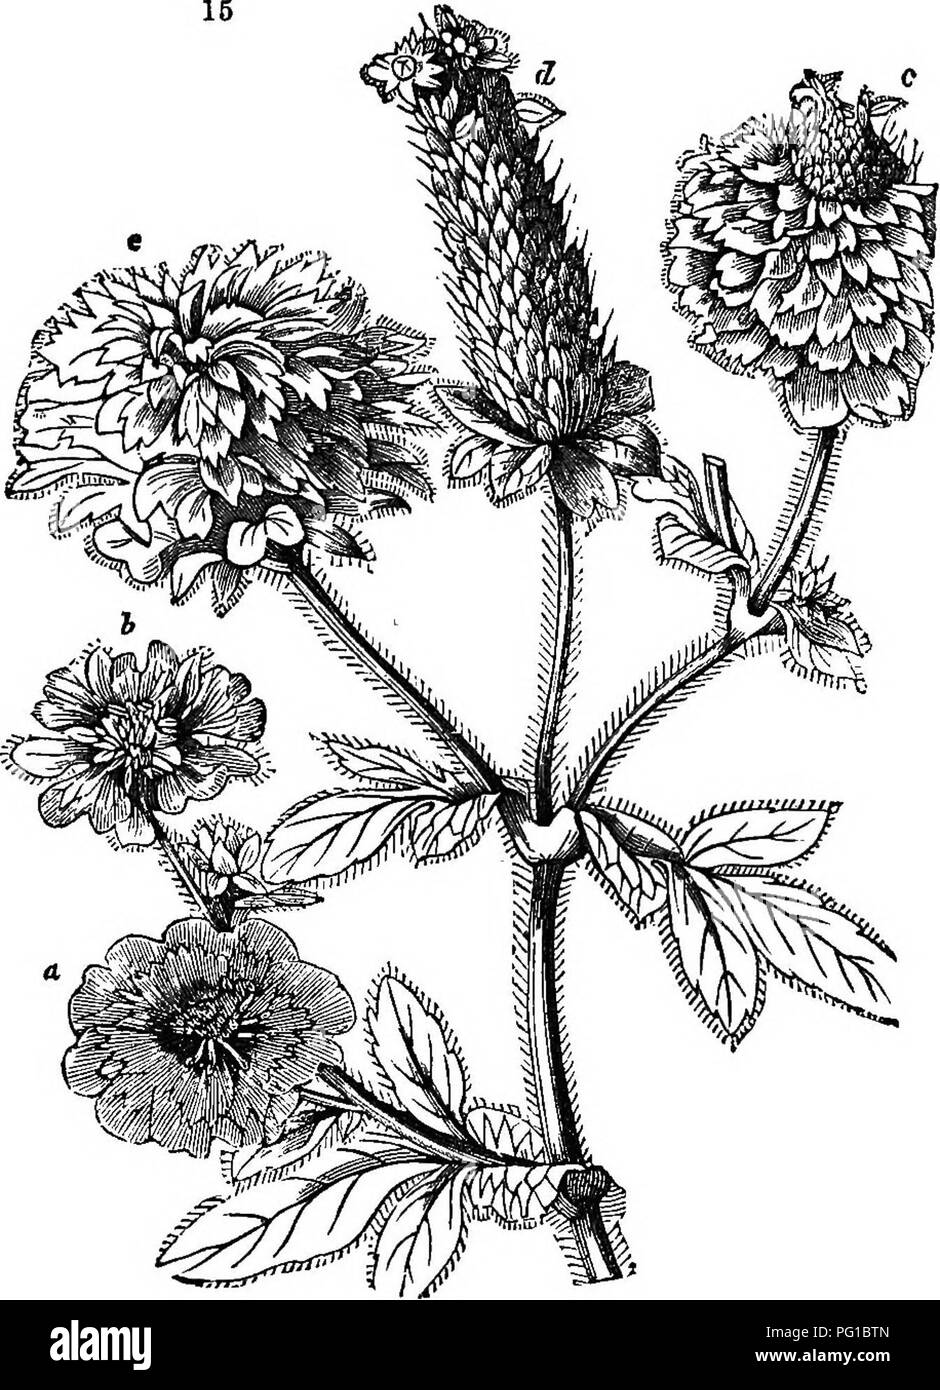 . The theory of horticulture : or, An attempt to explain the principal operations of gardening upon physiological principles . Horticulture; Plant physiology. ACTION OF FLOWEES. 61 also partially transformed into leaves {p p), while the wliole apparatus of stamens and pistils is converted into an ordinary branch. Fig. 15 shows the state of. plants of Potentilla nepalensis with their flowera changing to branches: a is a flower in the ordinary. Please note that these images are extracted from scanned page images that may have been digitally enhanced for readability - coloration and appearance of - Stock Image